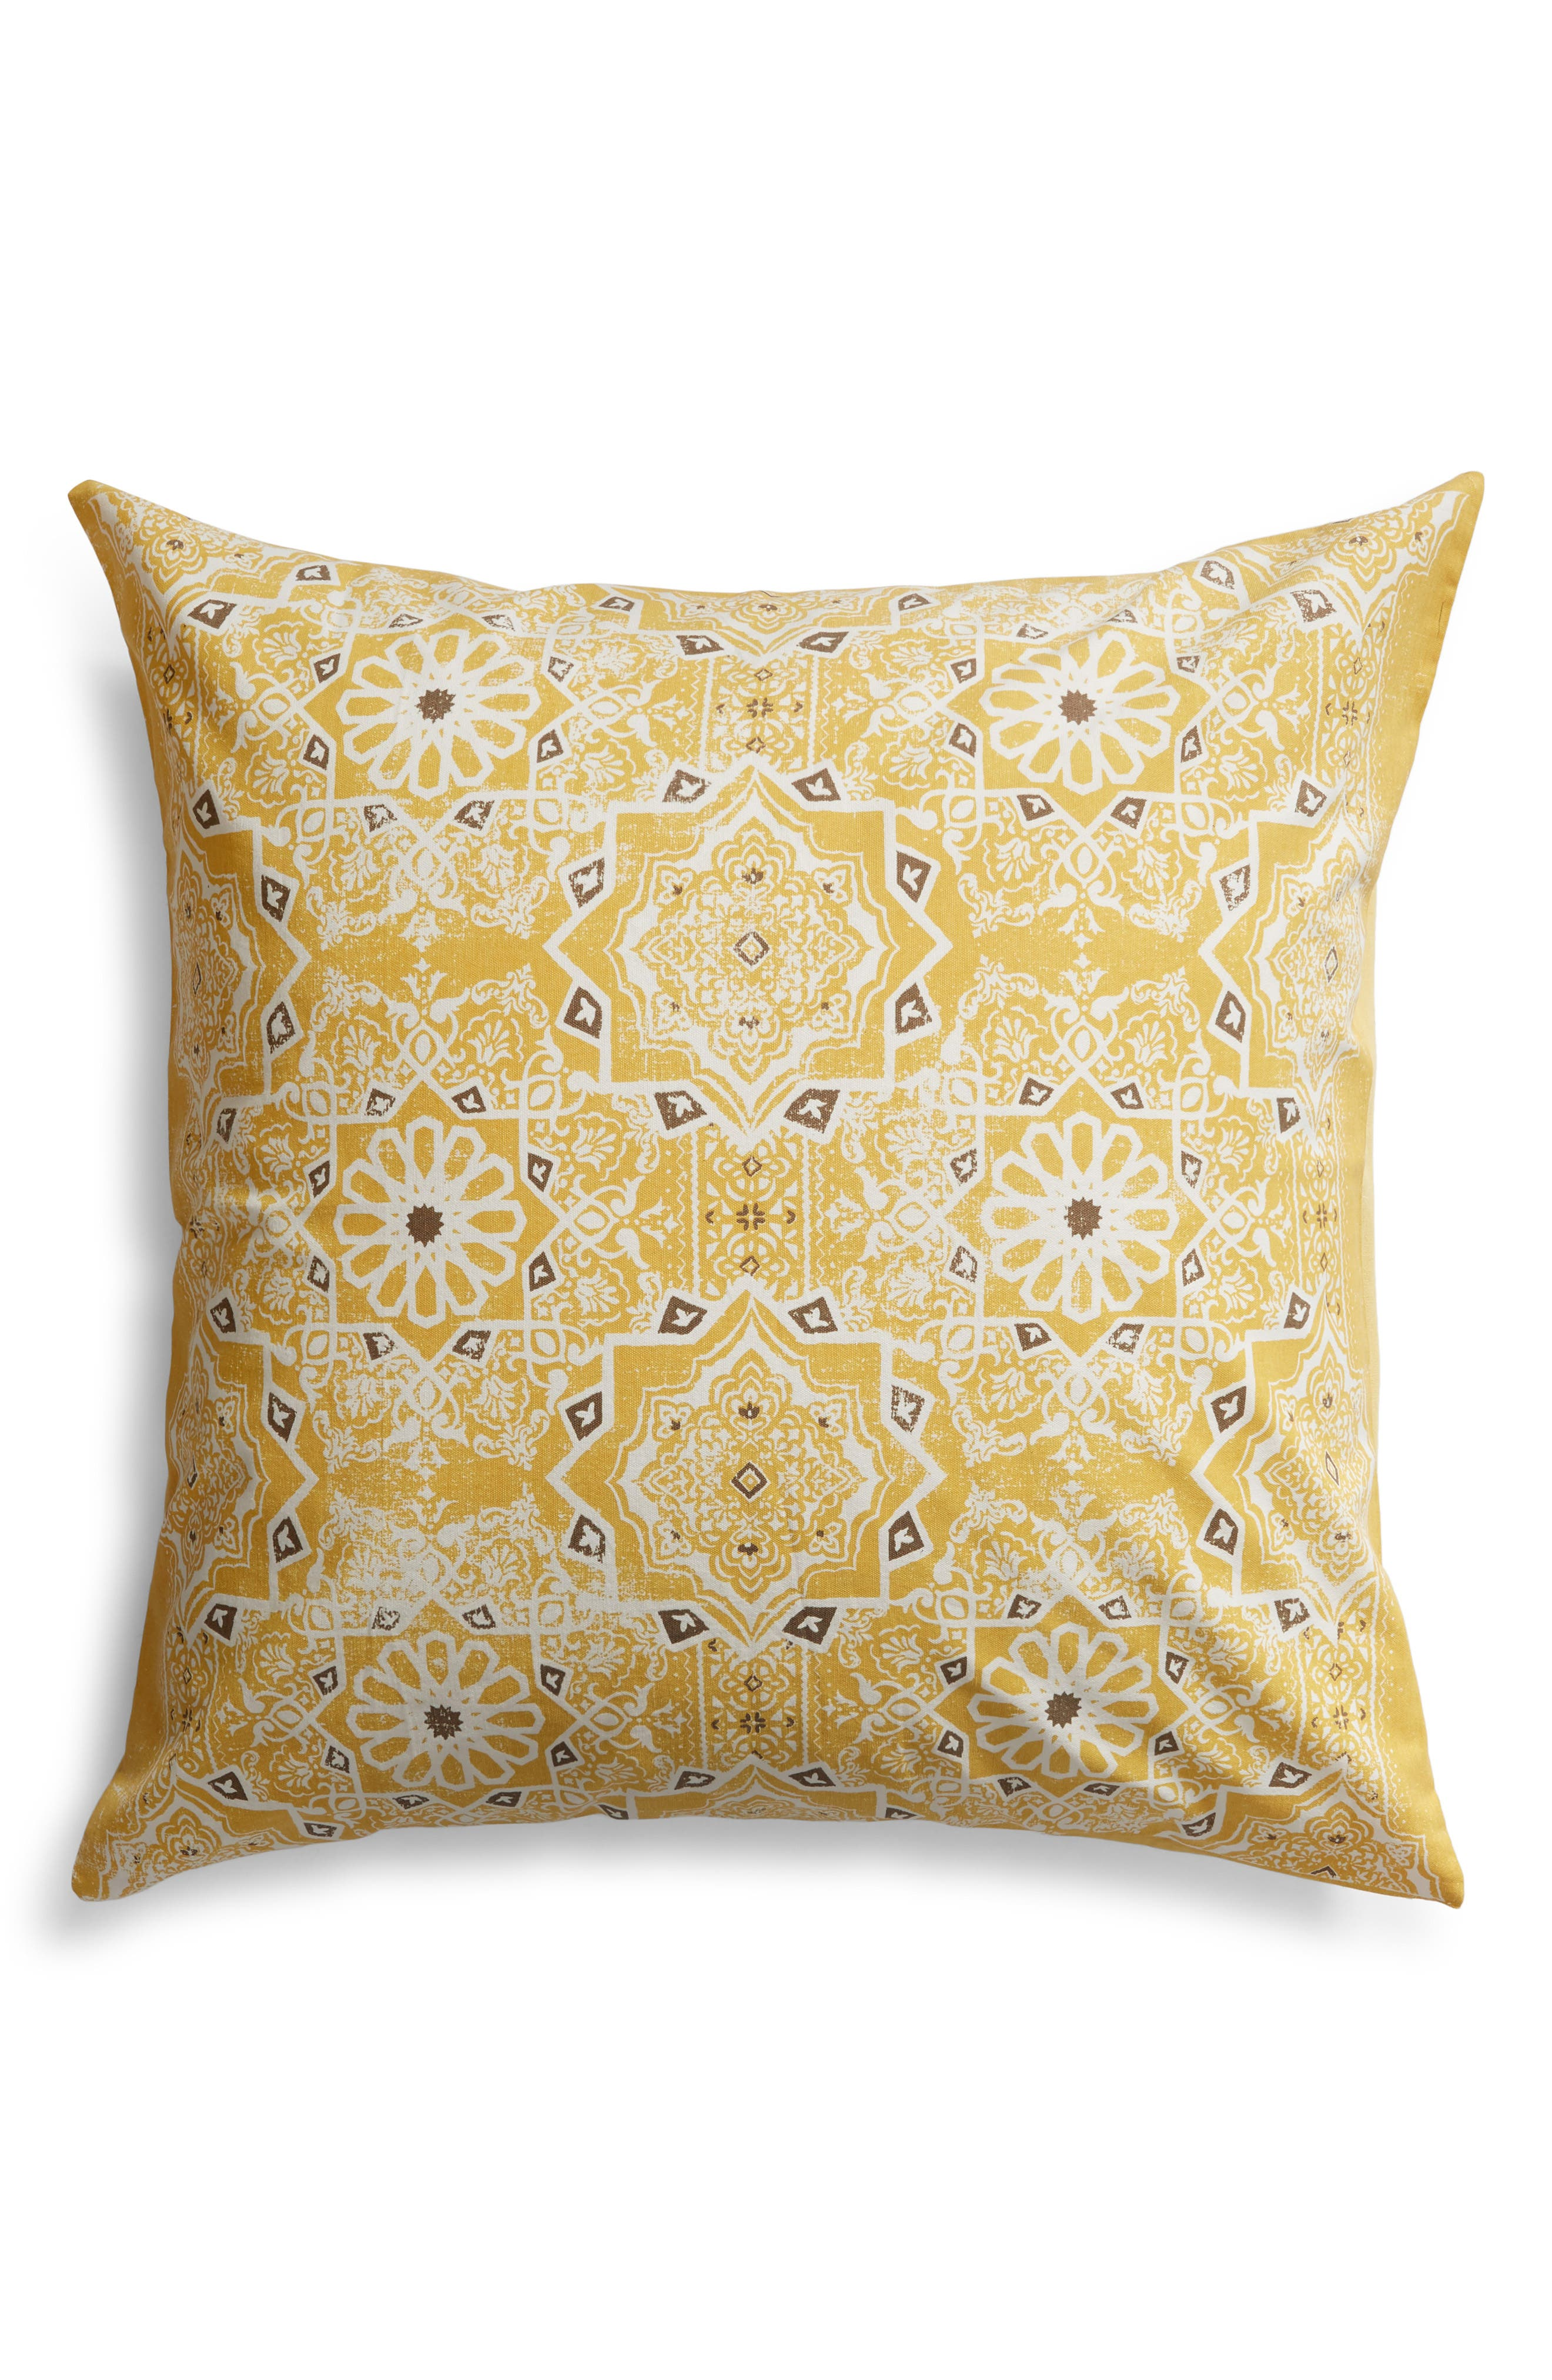 Nordstrom at Home Hera Accent Pillow